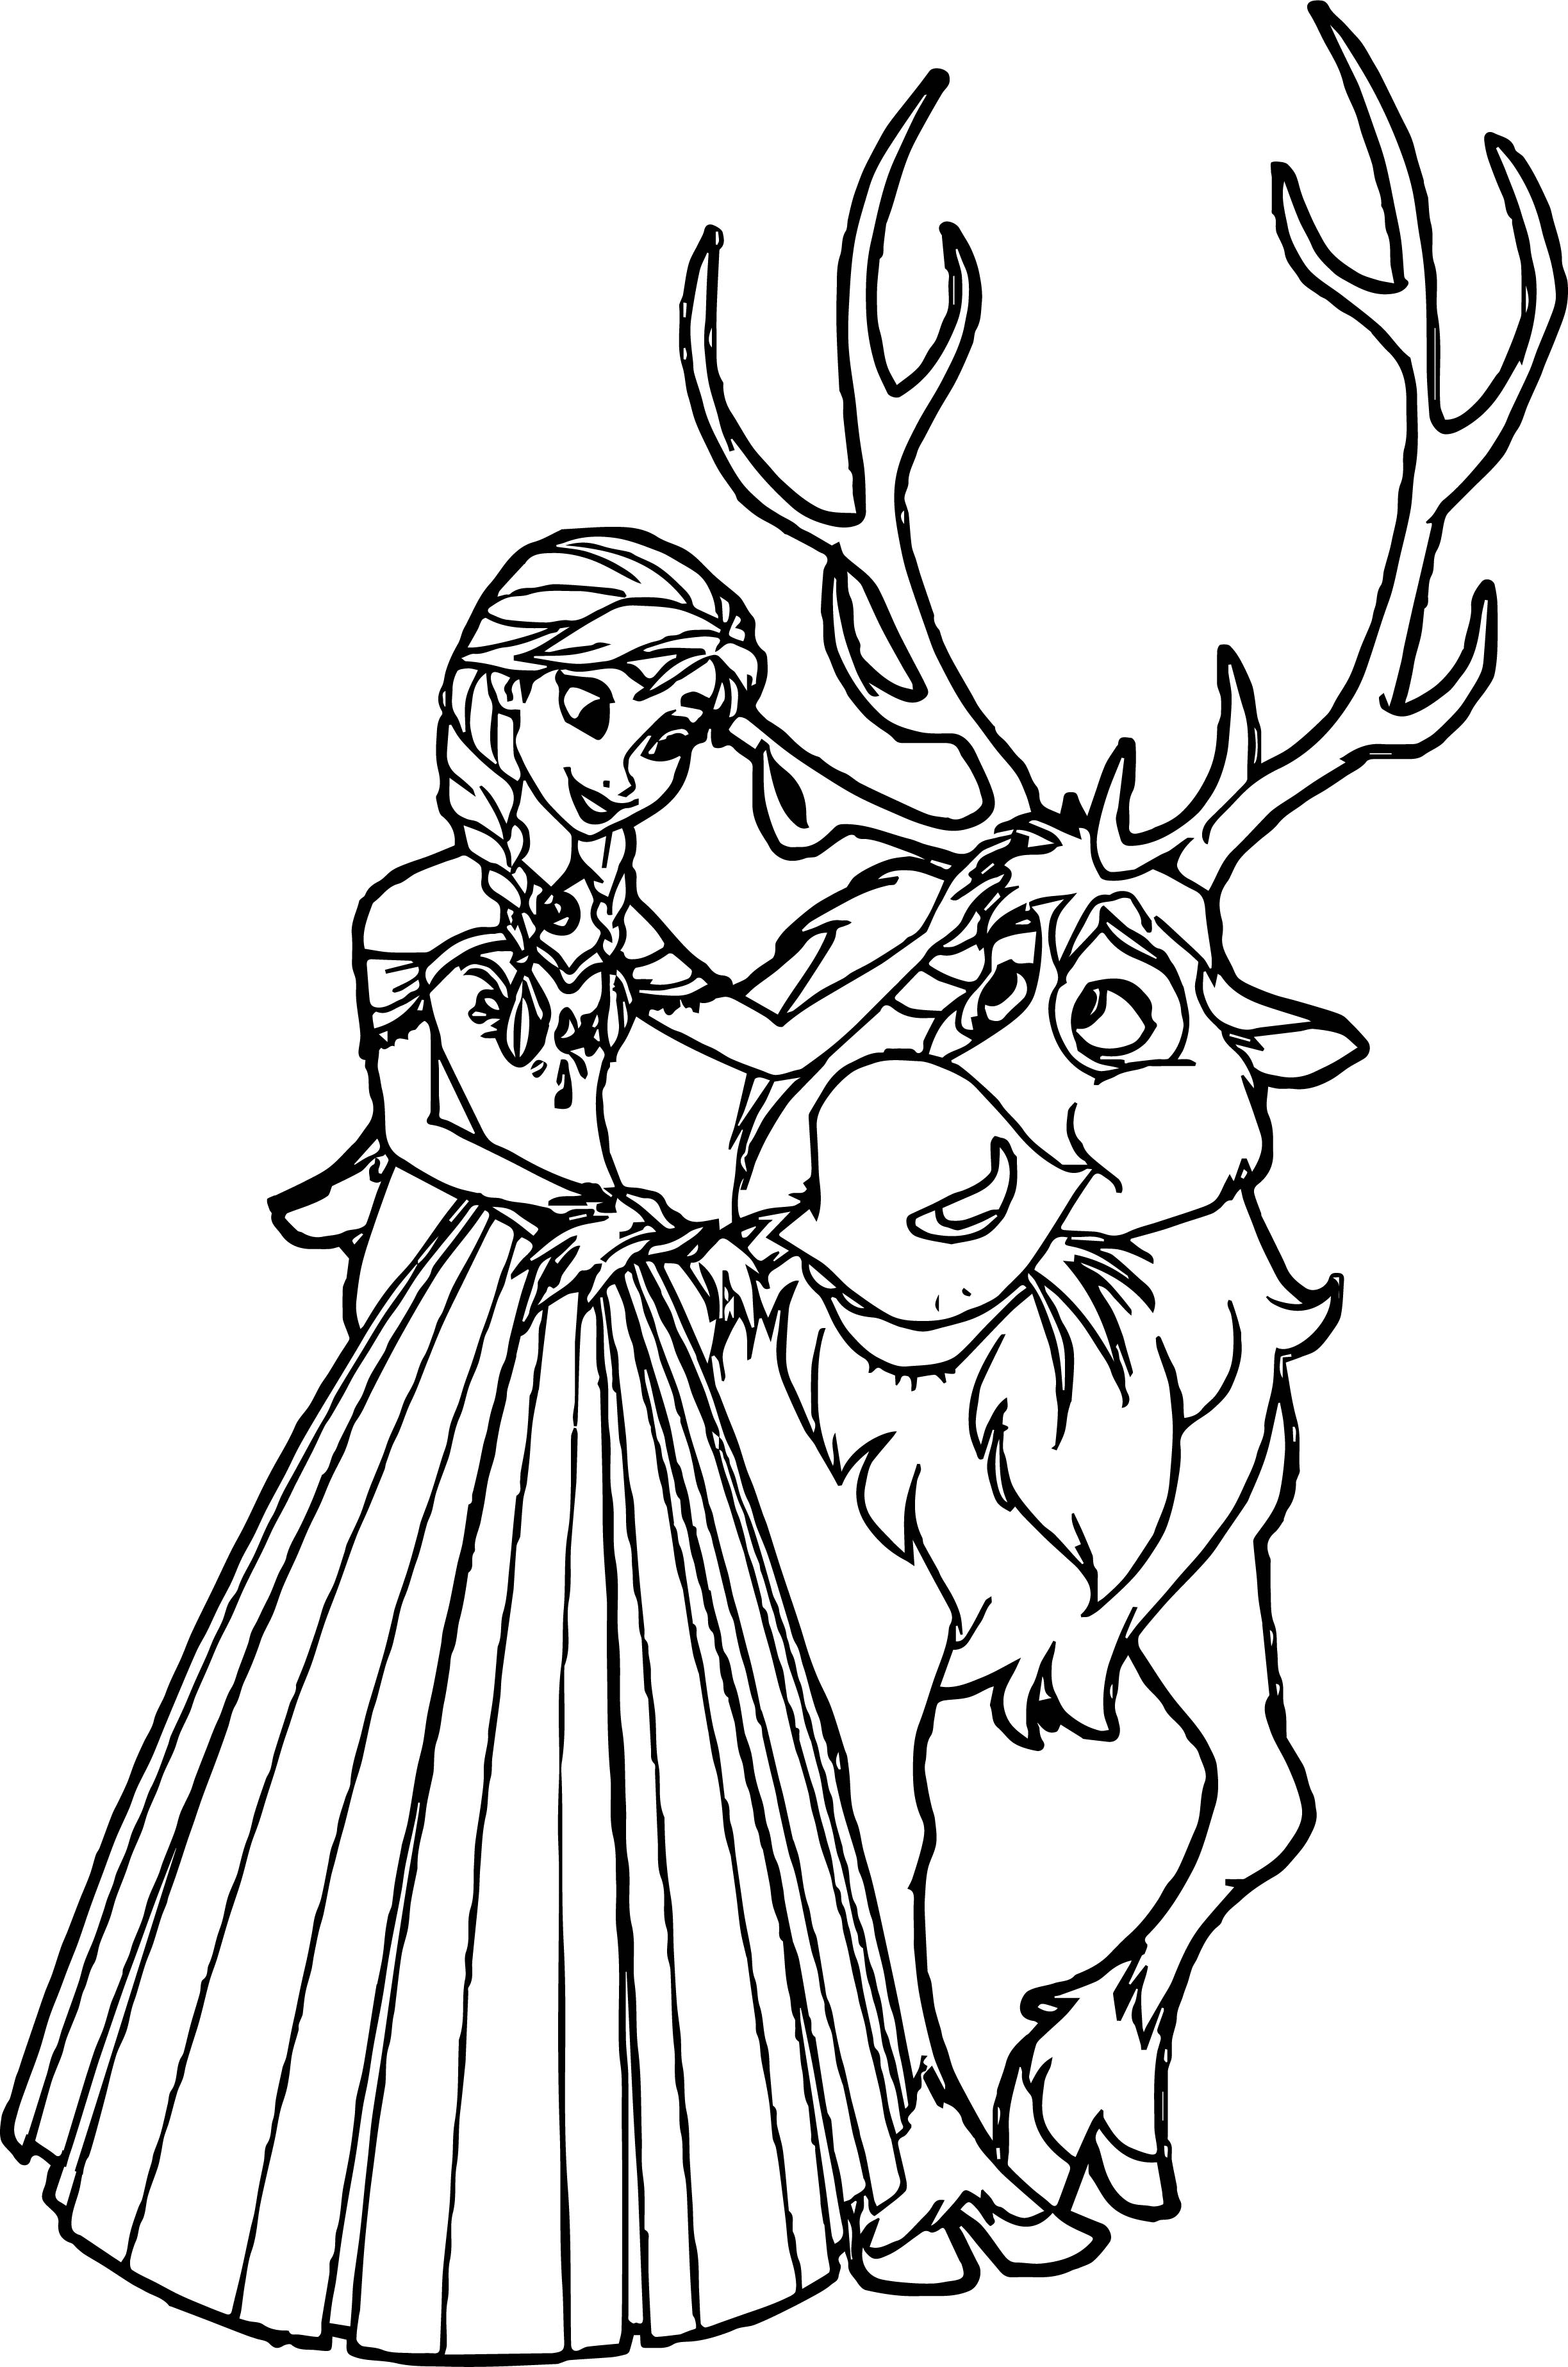 Anna Sven Coloring Page   Wecoloringpage